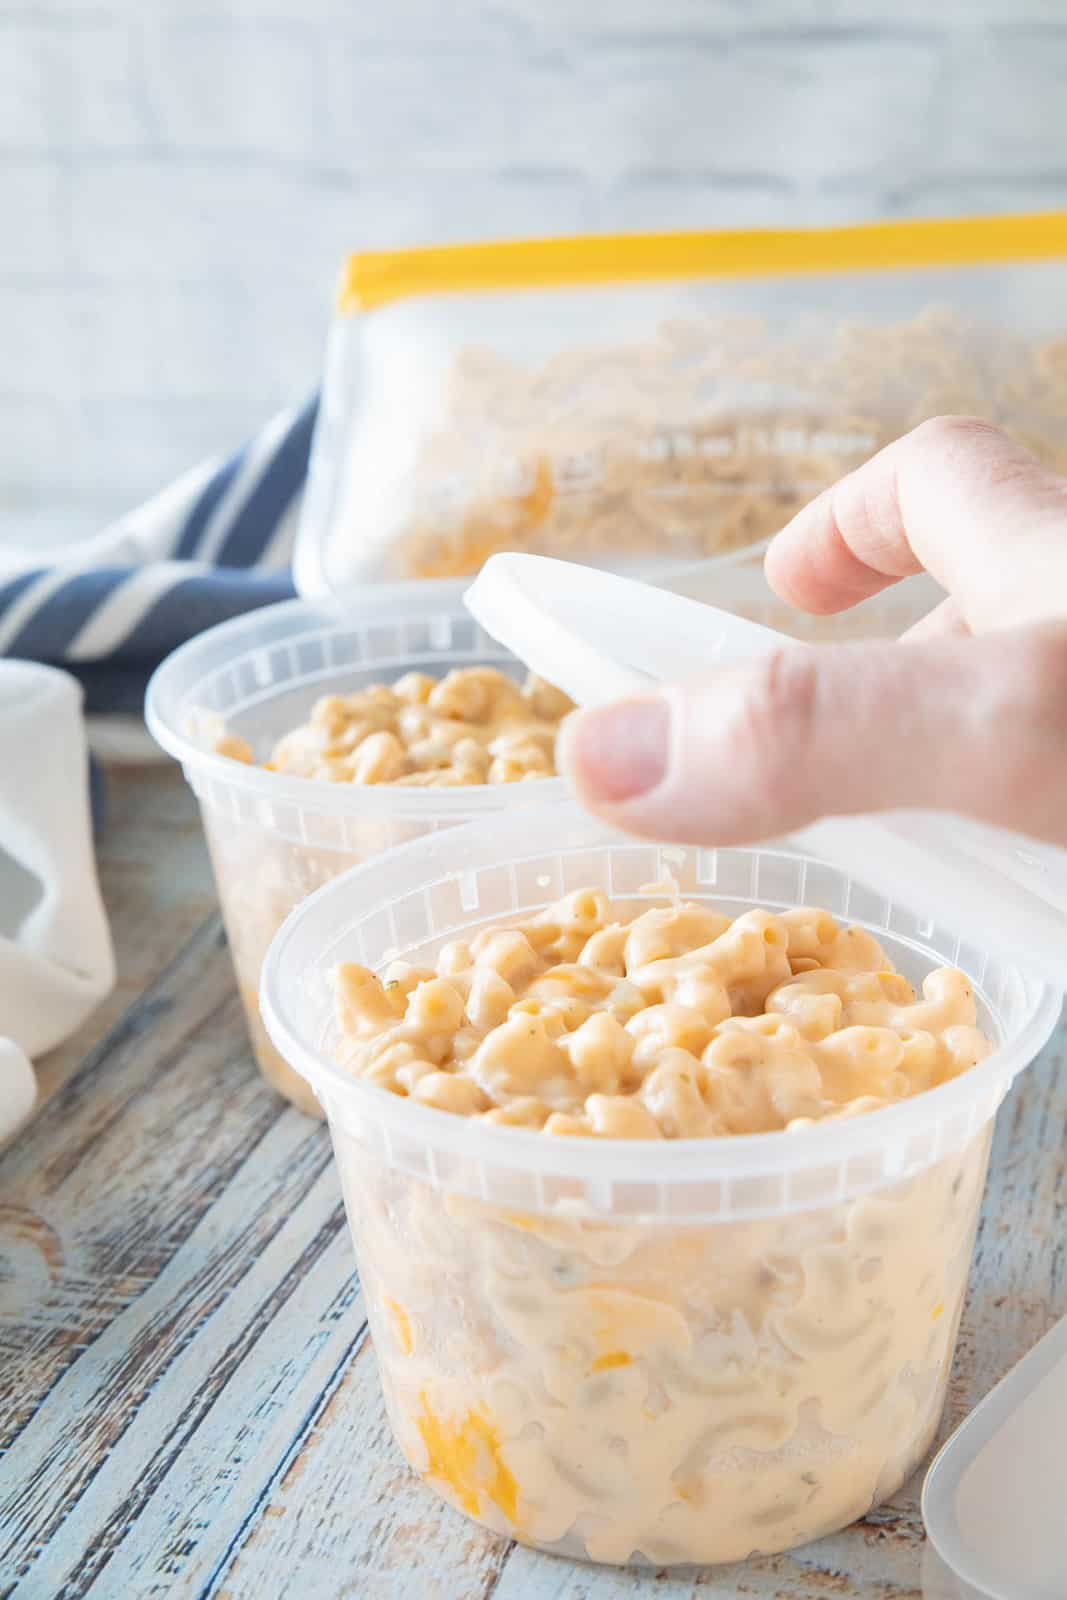 A hand placing a lid on top of a plastic container of Mac & cheese.